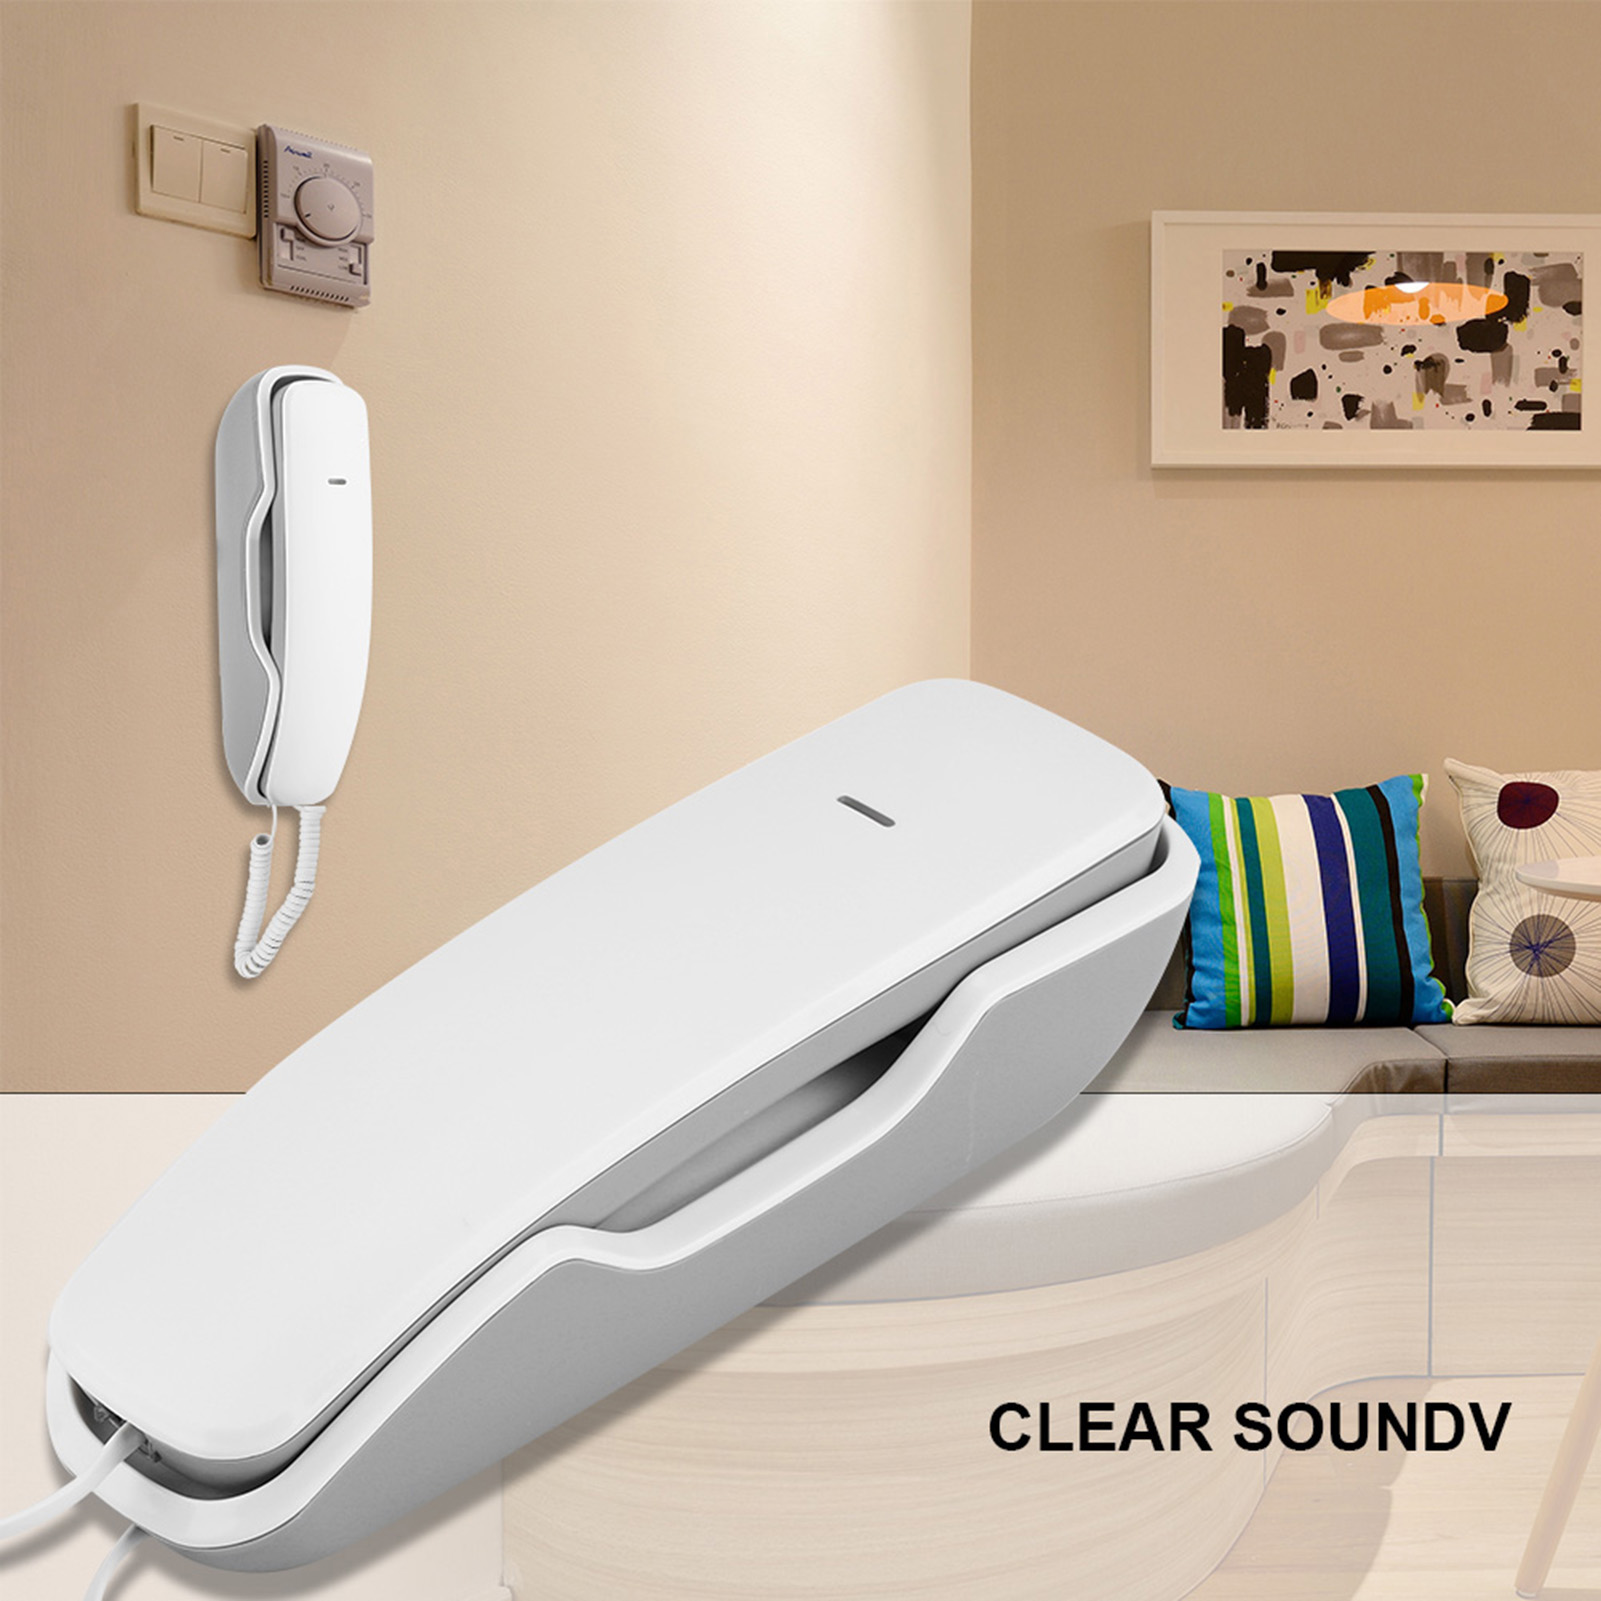 Wall-Mounted-Telephone-Landline-Corded-Phone-Home-Office-Desk-Noise-Cancelling